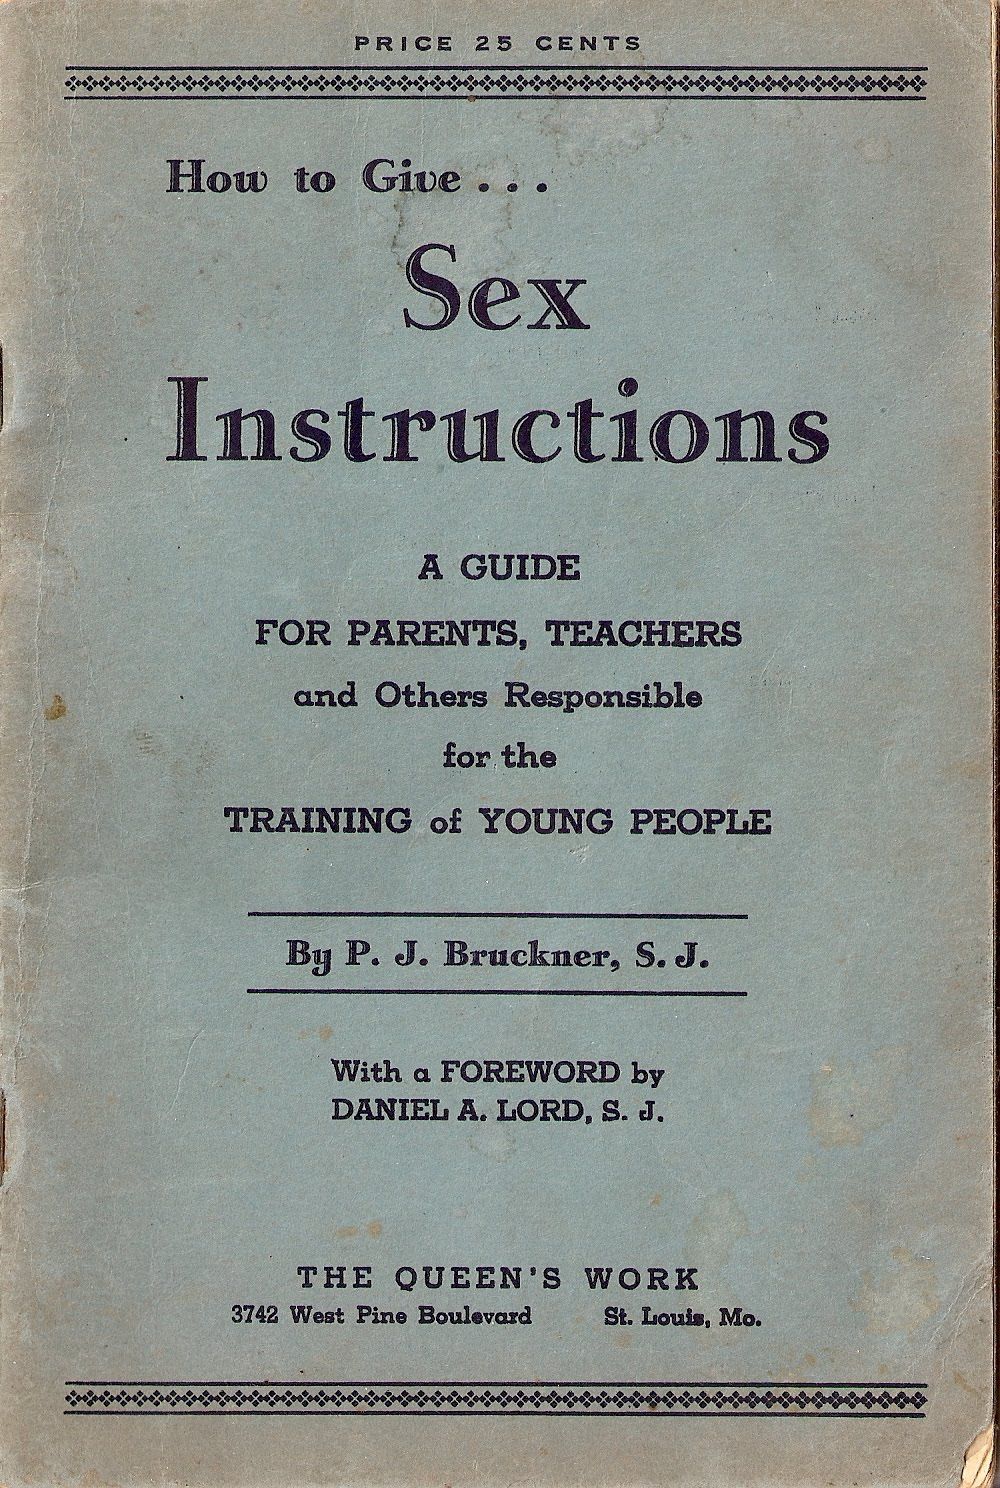 Instructions for sex